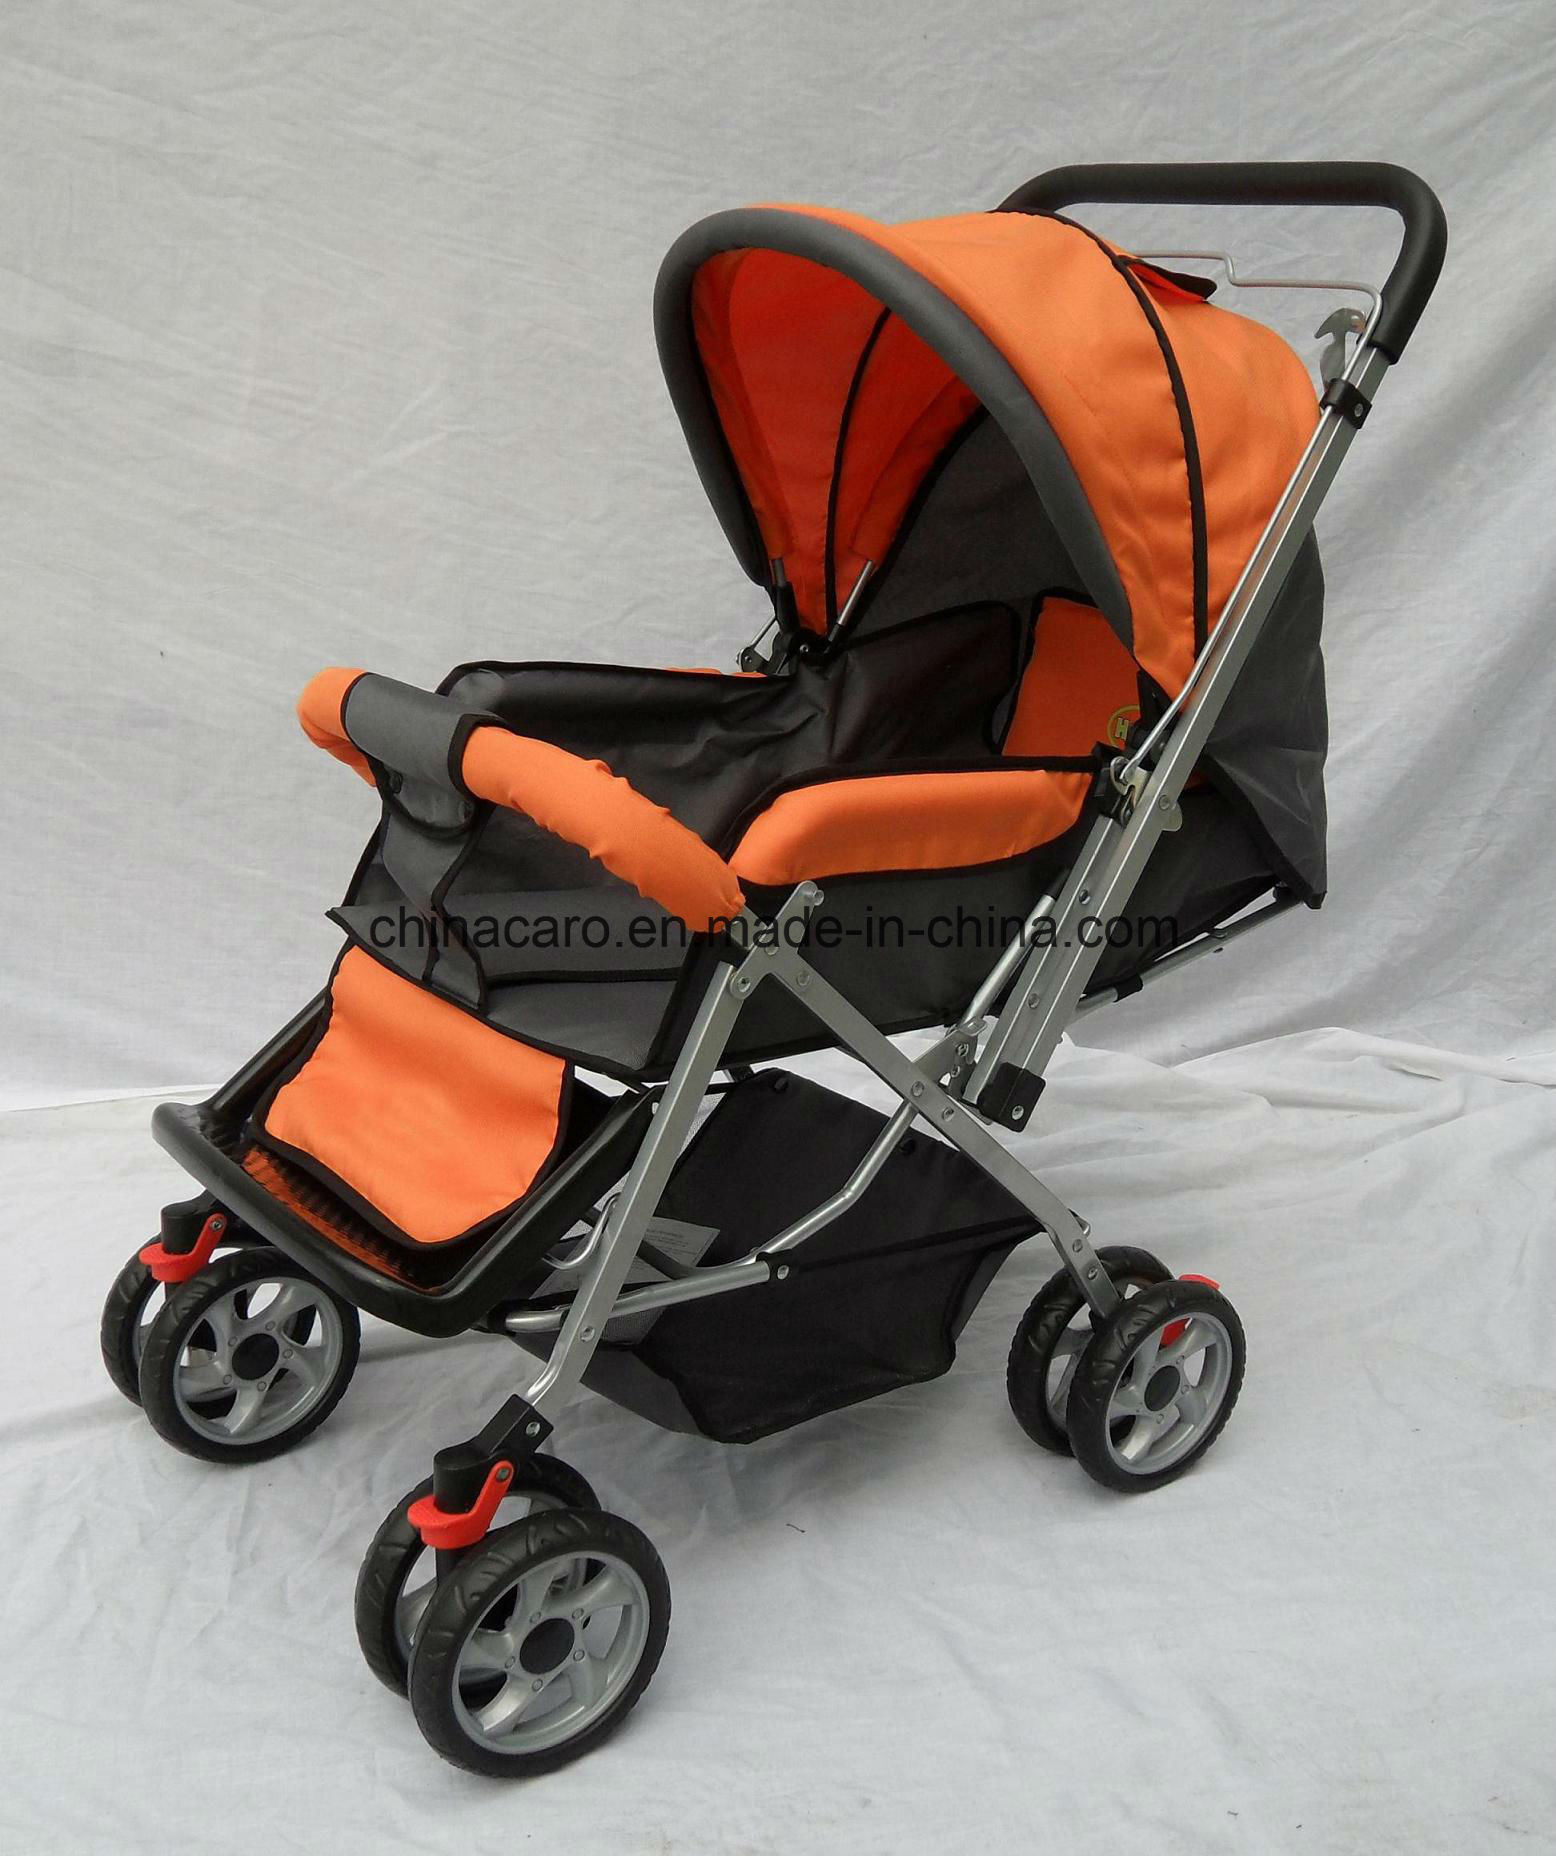 Comfortable Baby Products with Ce Certificate (CA-BB255)